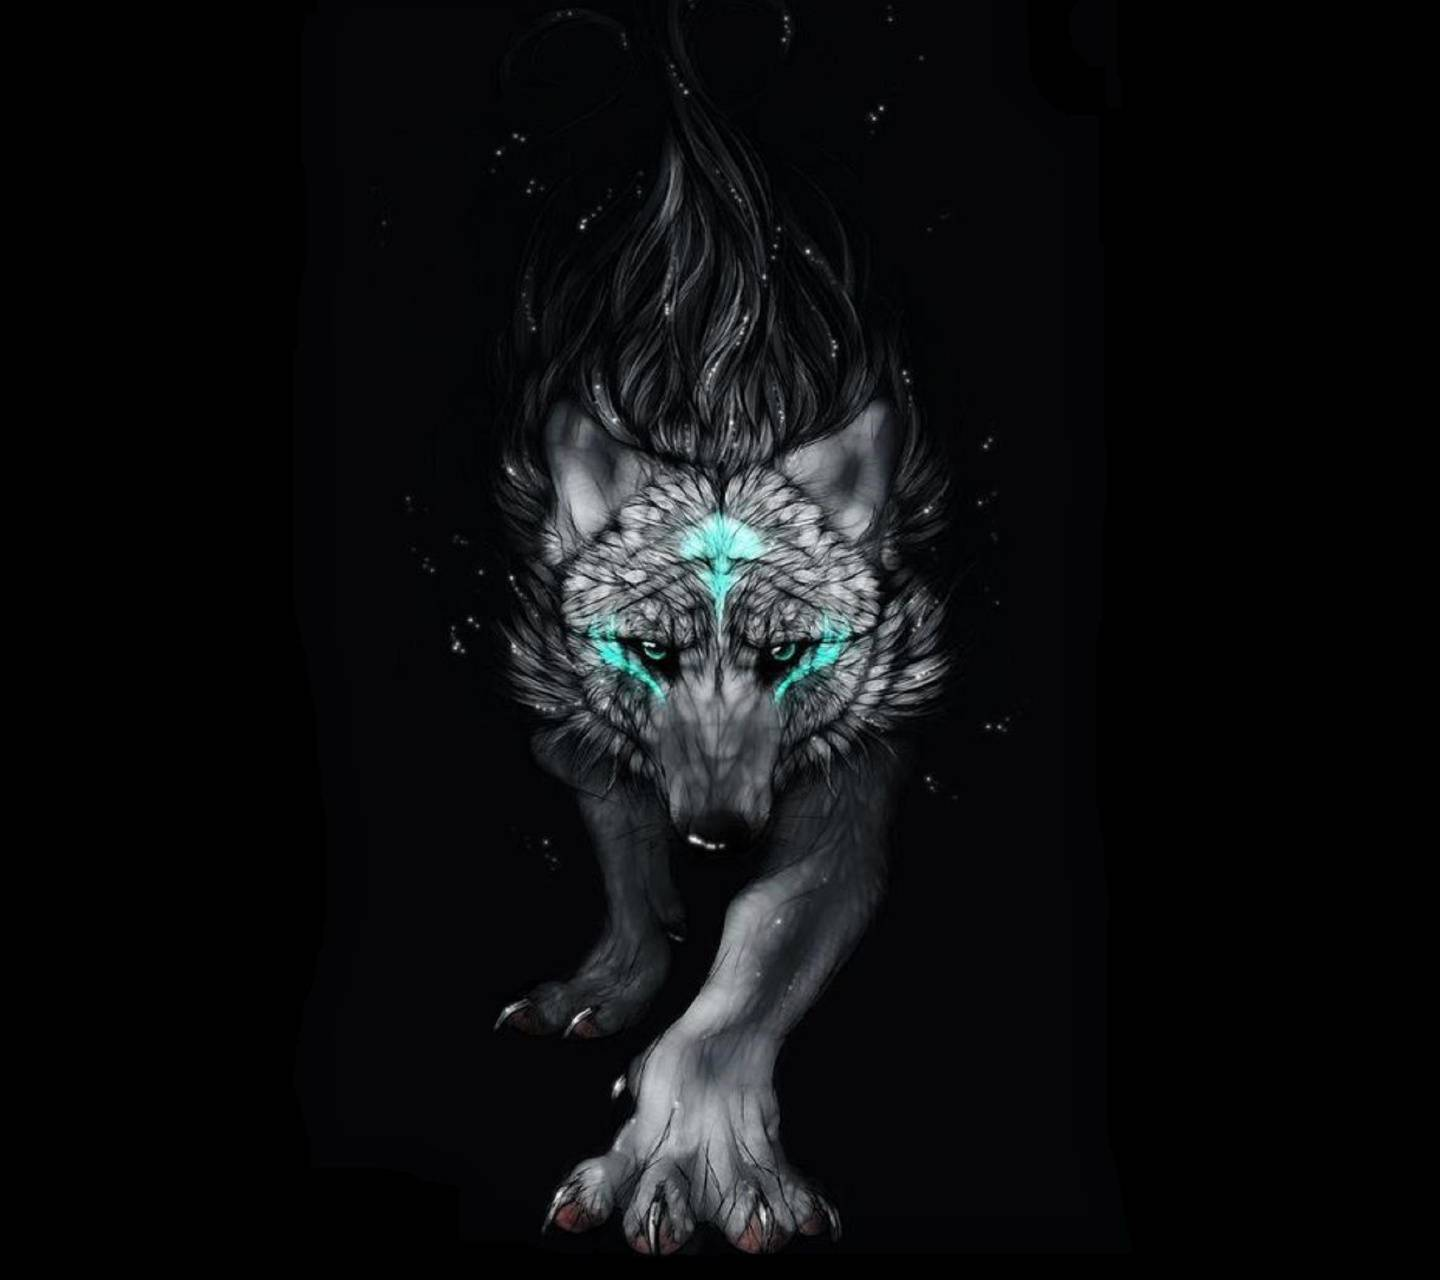 Blue Wolf Wallpaper By Undeadangel177148 Cc Free On Zedge